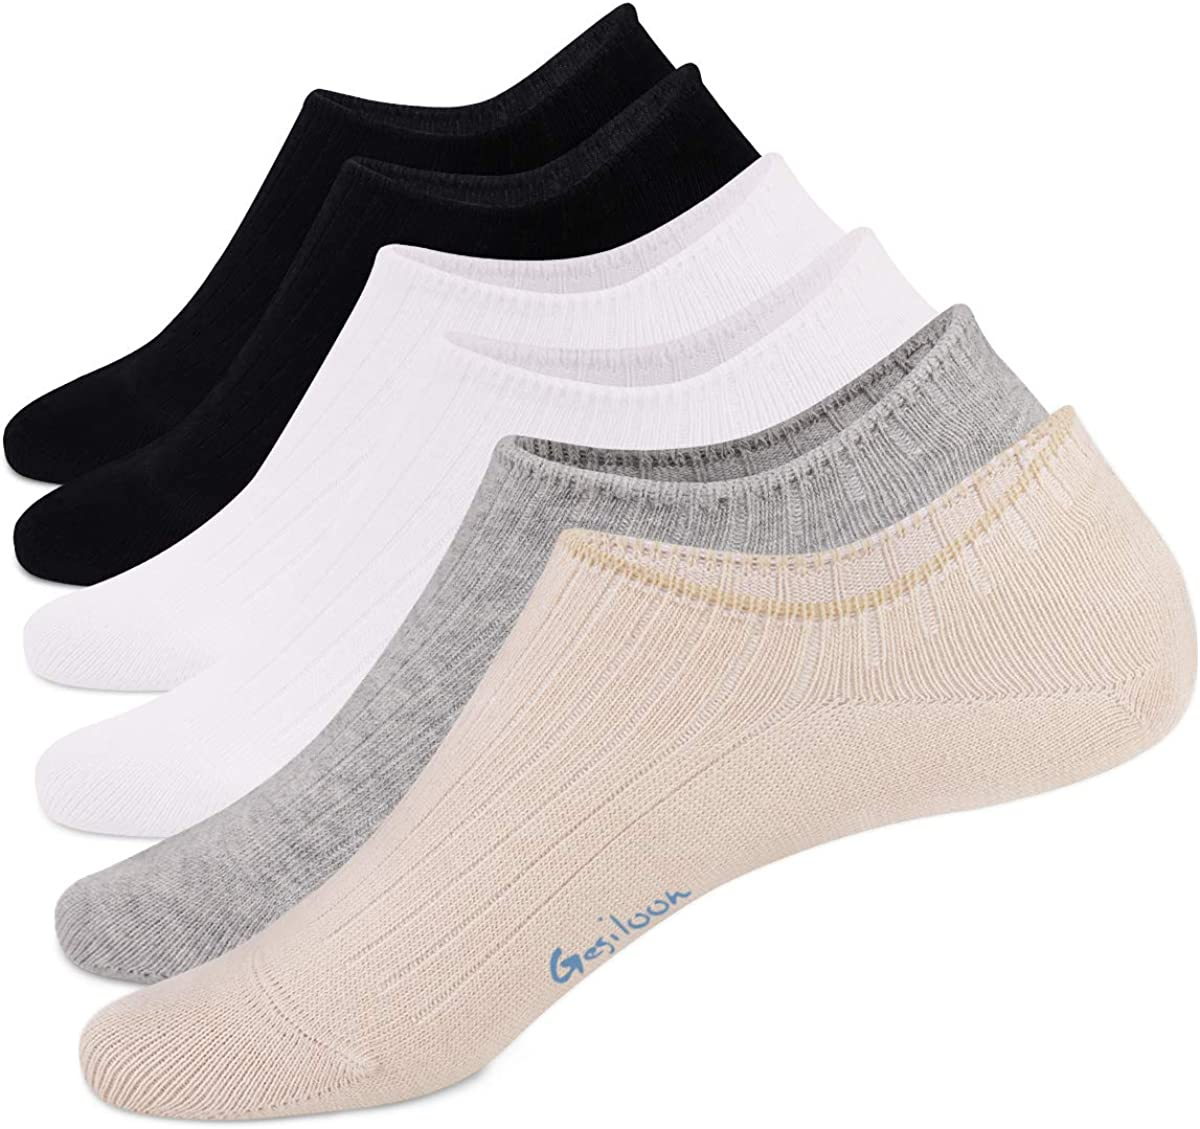 Gesiloon 6 Pairs Cotton Socks Non Slip Low Cut Invisible Casual Athletic Breathable Socks For Women Men